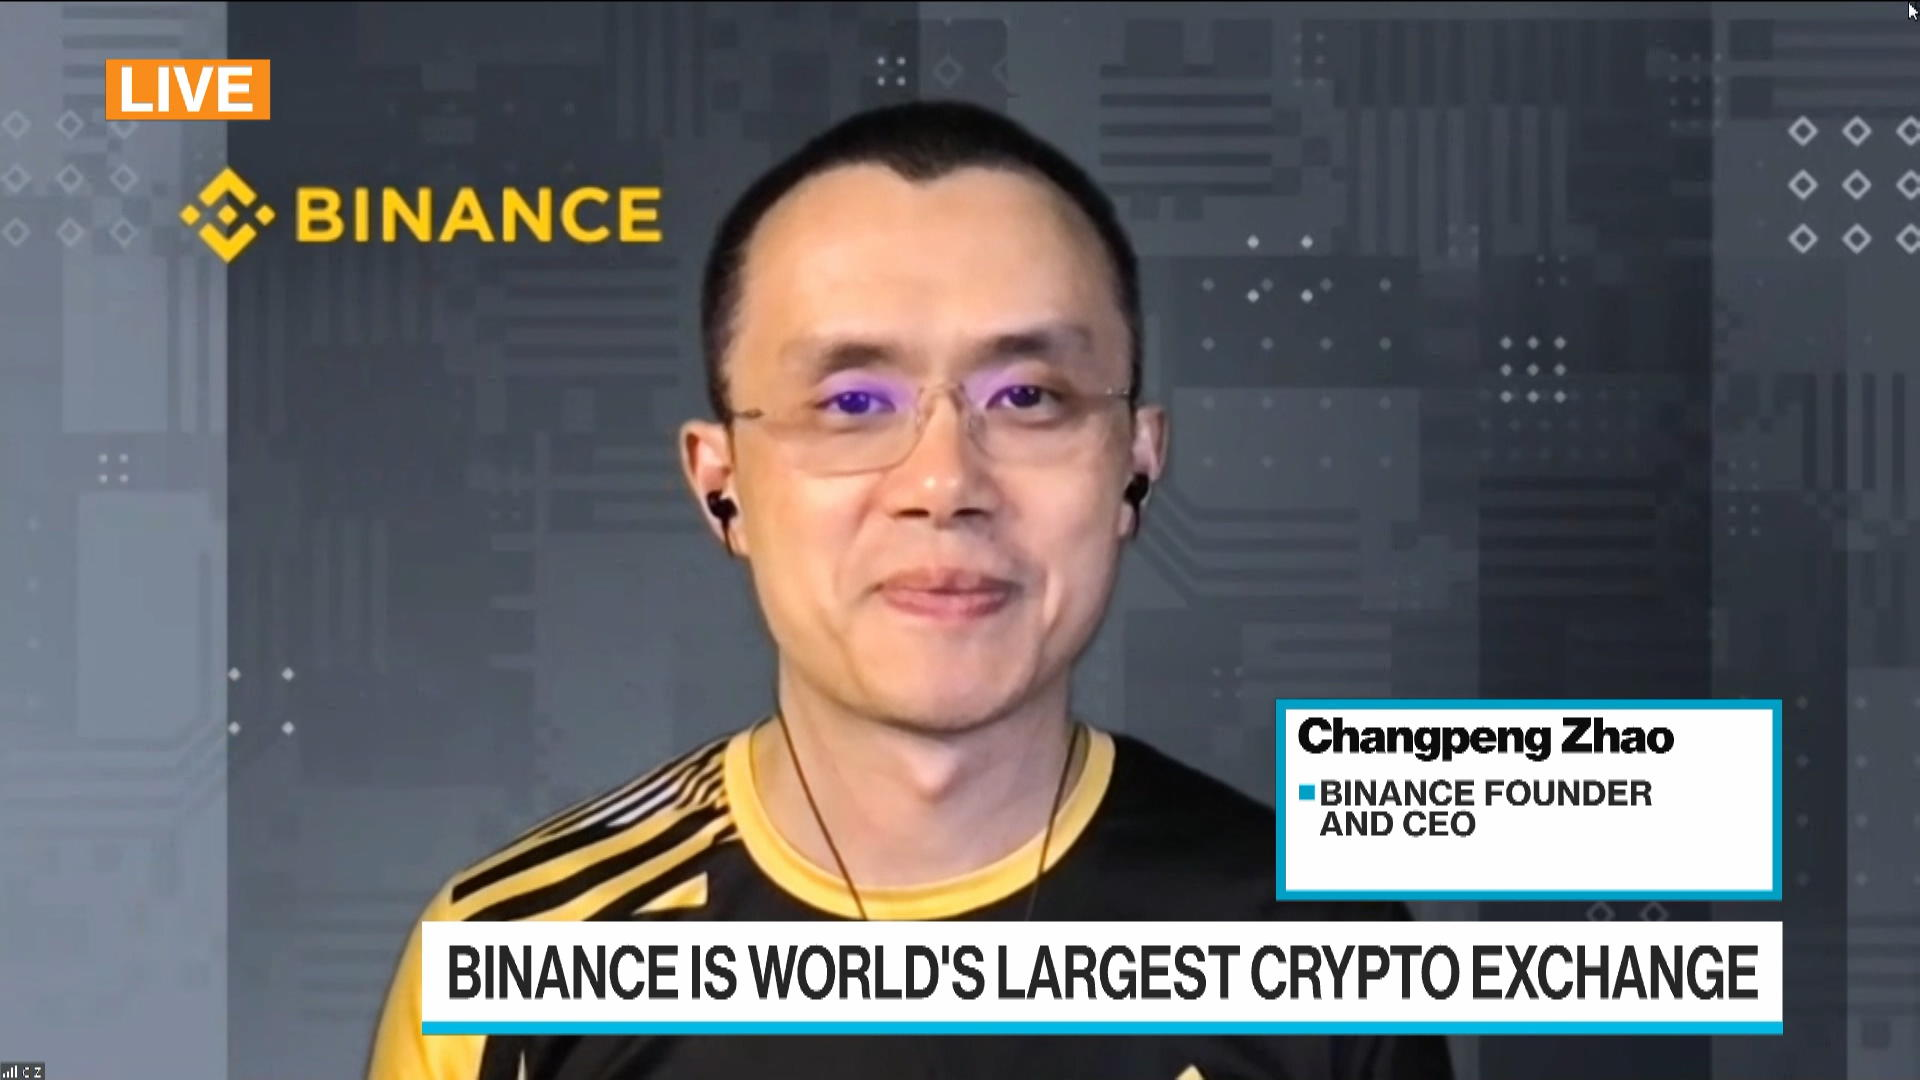 Binance CEO Sees Higher Institutional Uptake for Crypto